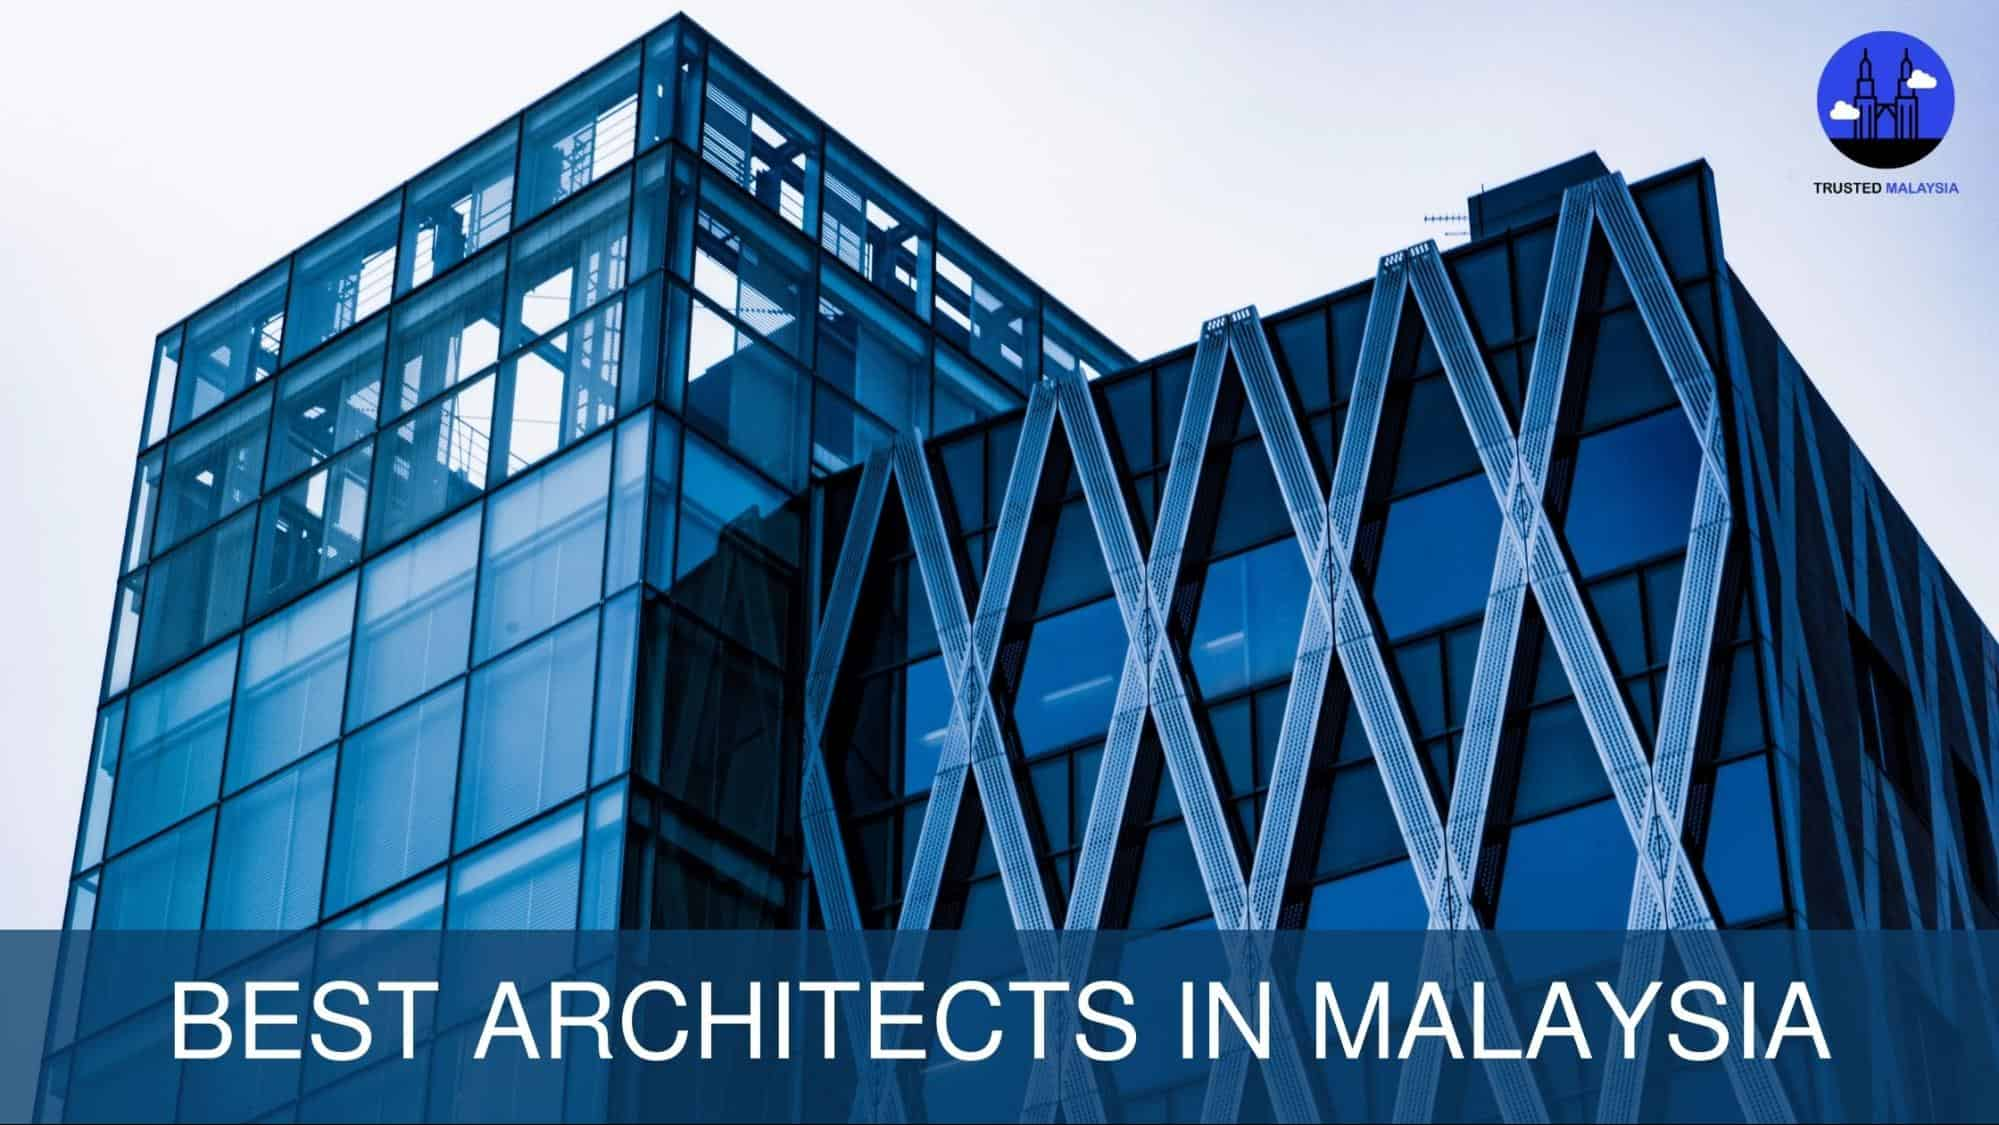 Best Architects in Malaysia